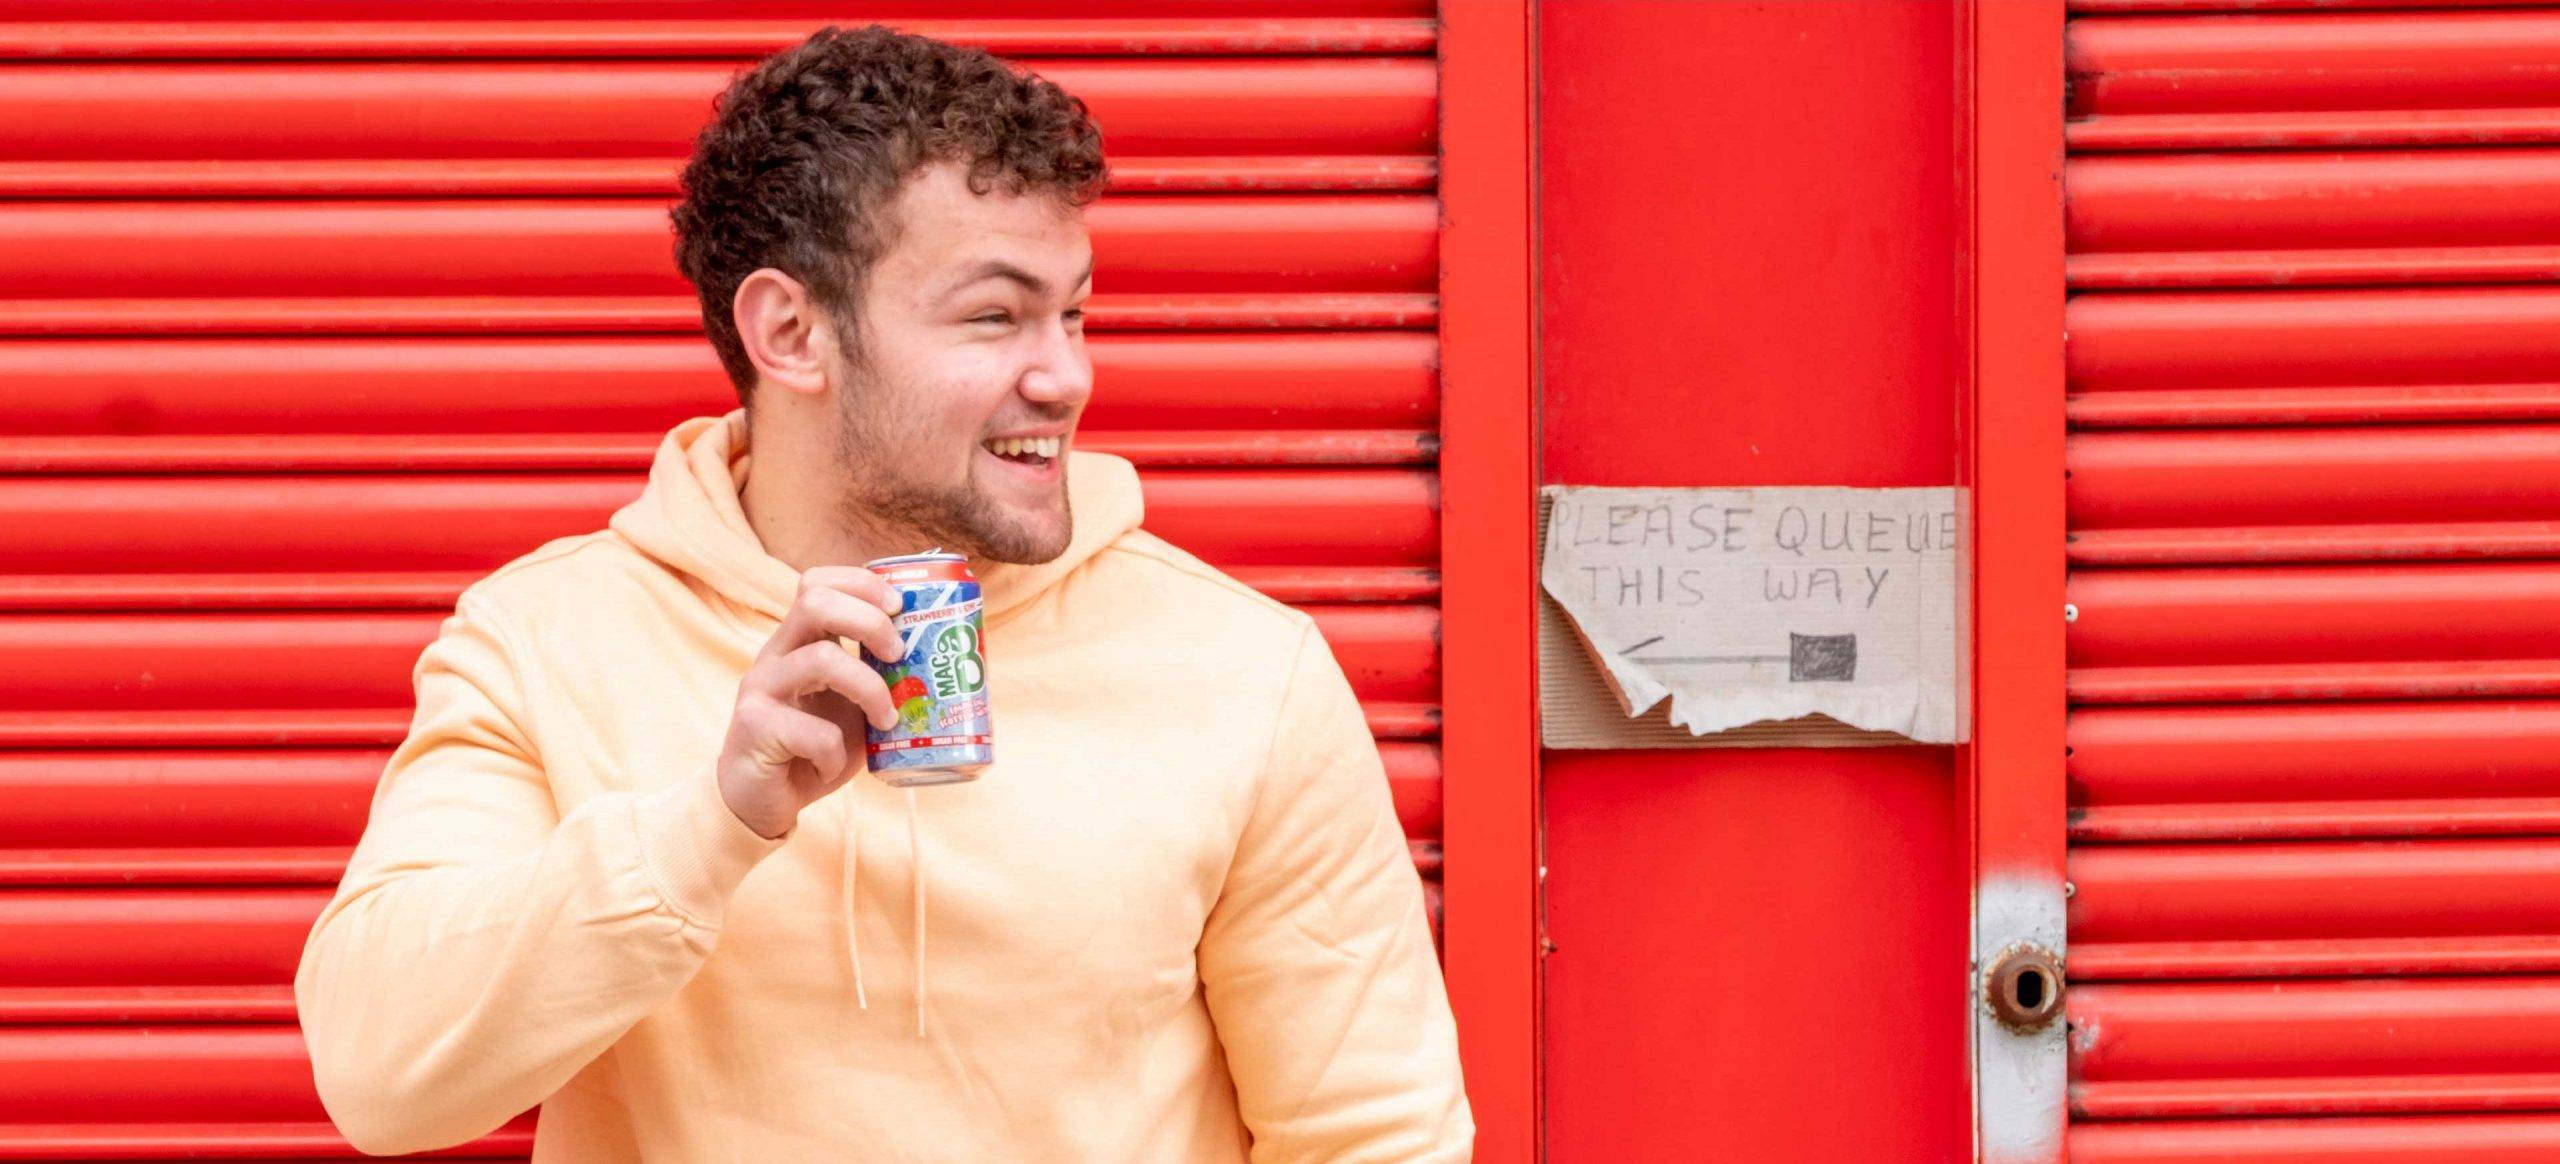 A young man drinking a can of Macb sparkling spring water in front of a red shop frontage